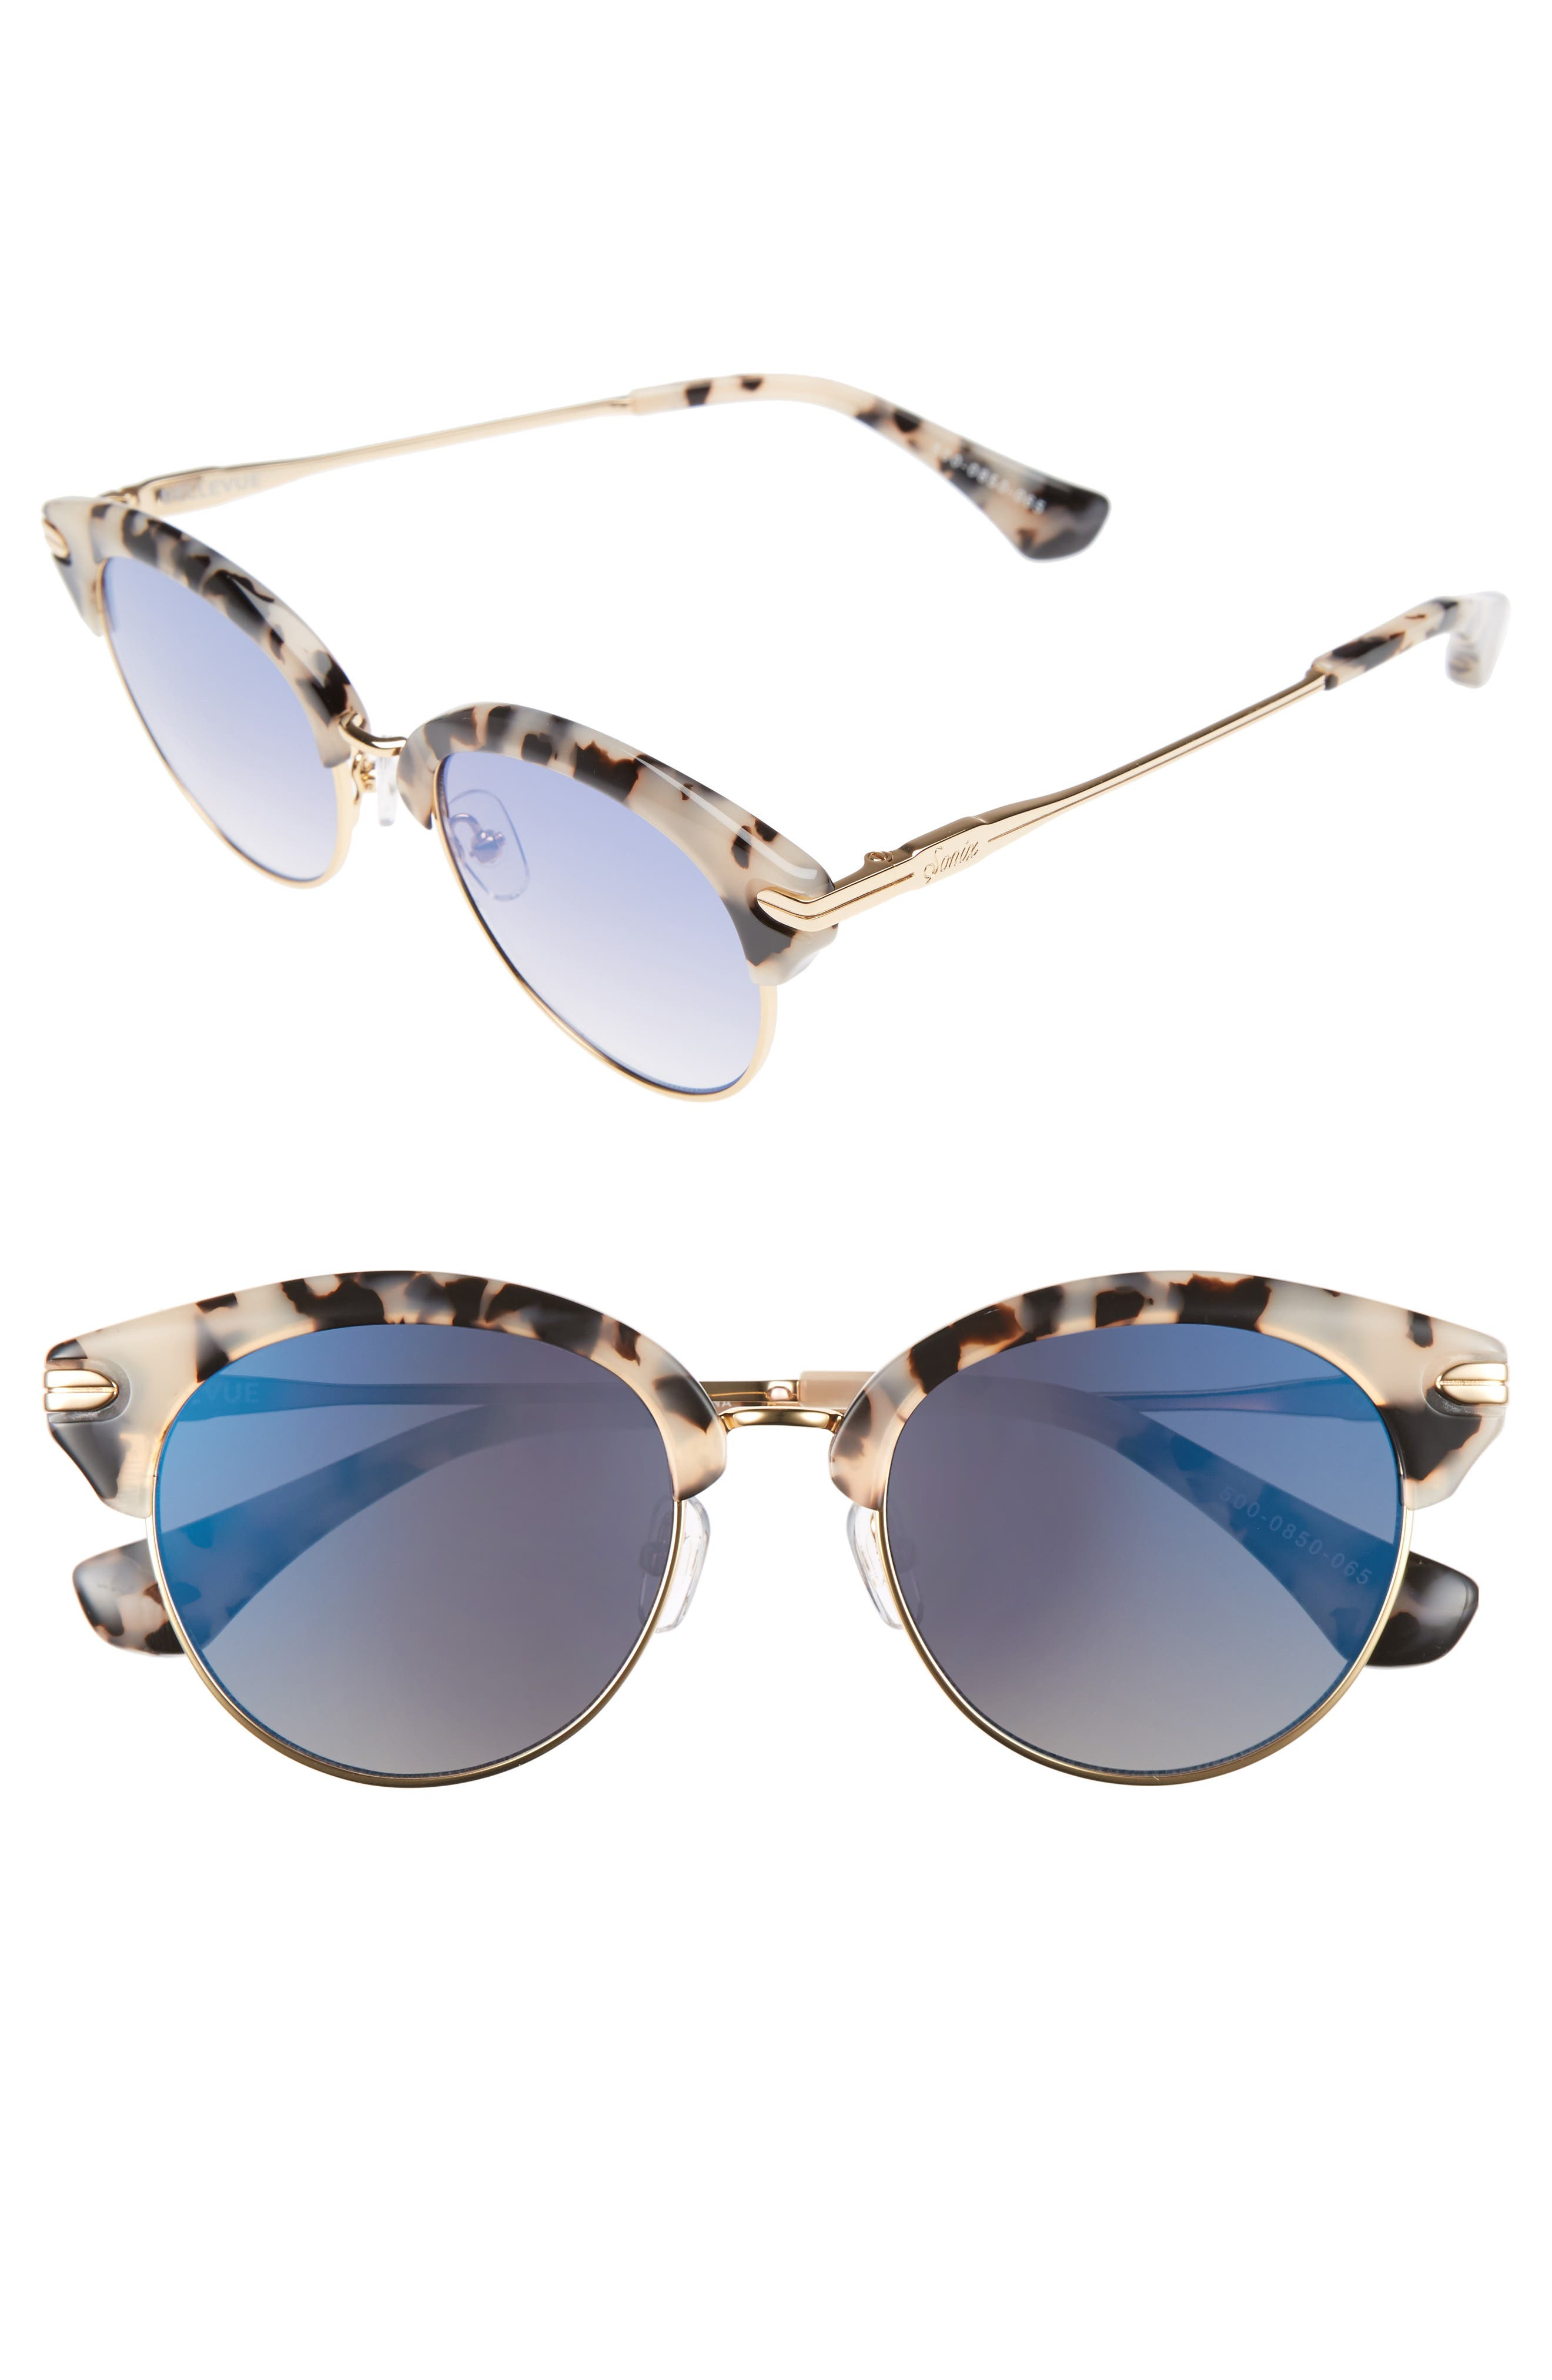 Bellevue 50mm Mirrored Sunglasses,                             Main thumbnail 1, color,                             200